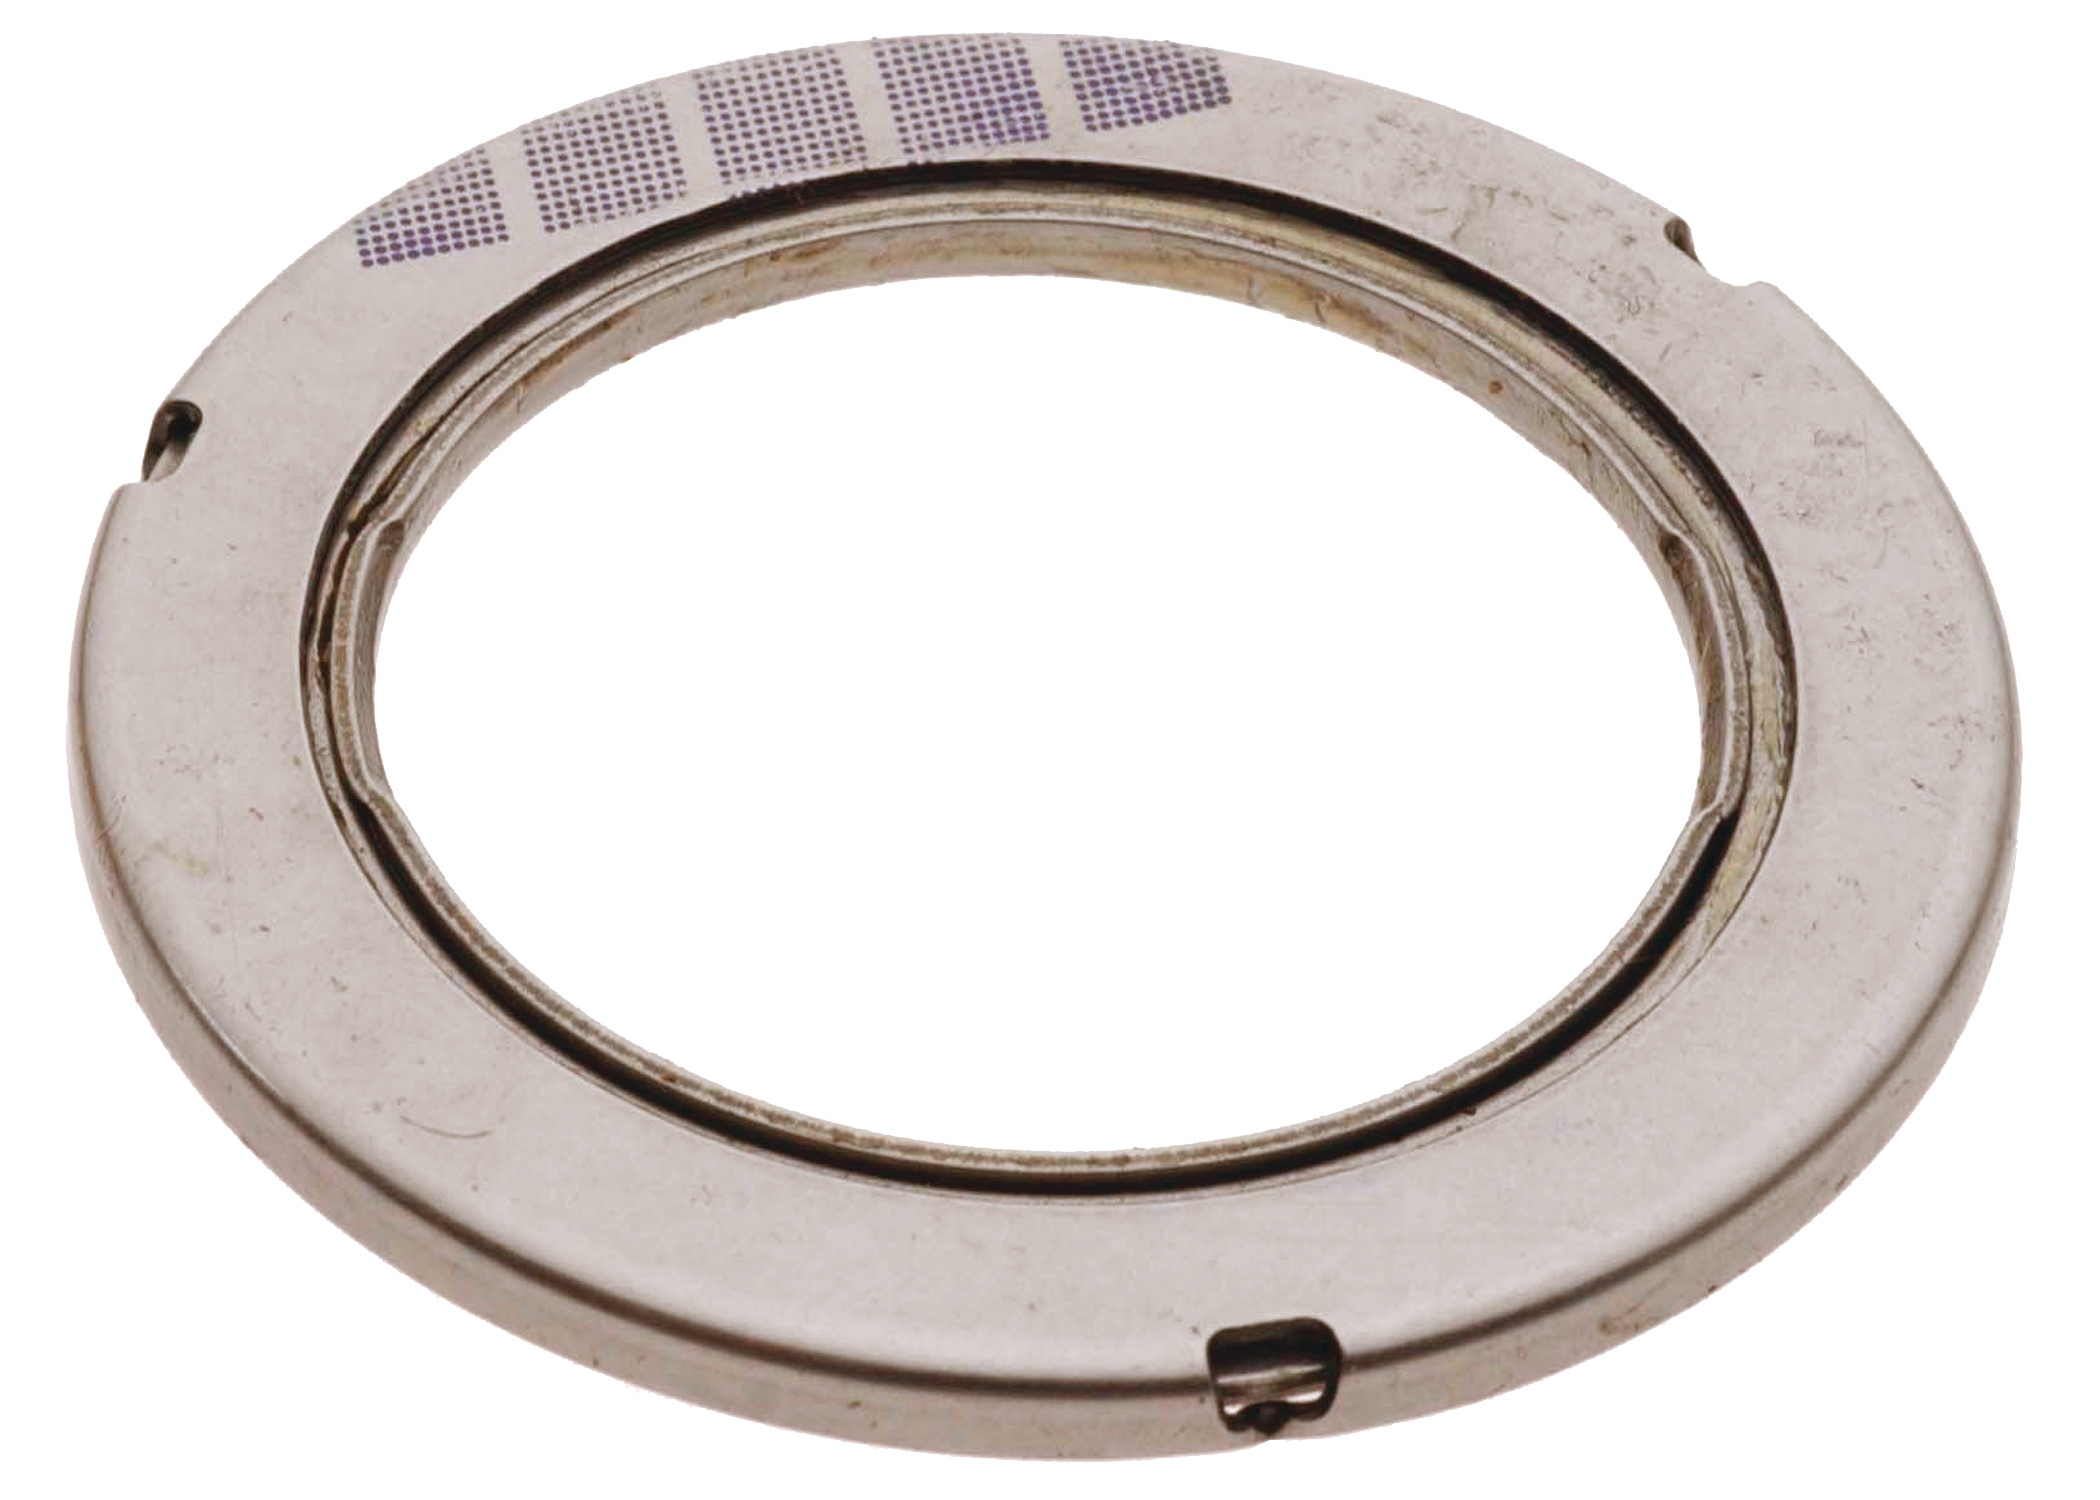 ACDELCO GM ORIGINAL EQUIPMENT - Automatic Transmission Differential Carrier Sun Gear Thrust Bearing - DCB 24202396